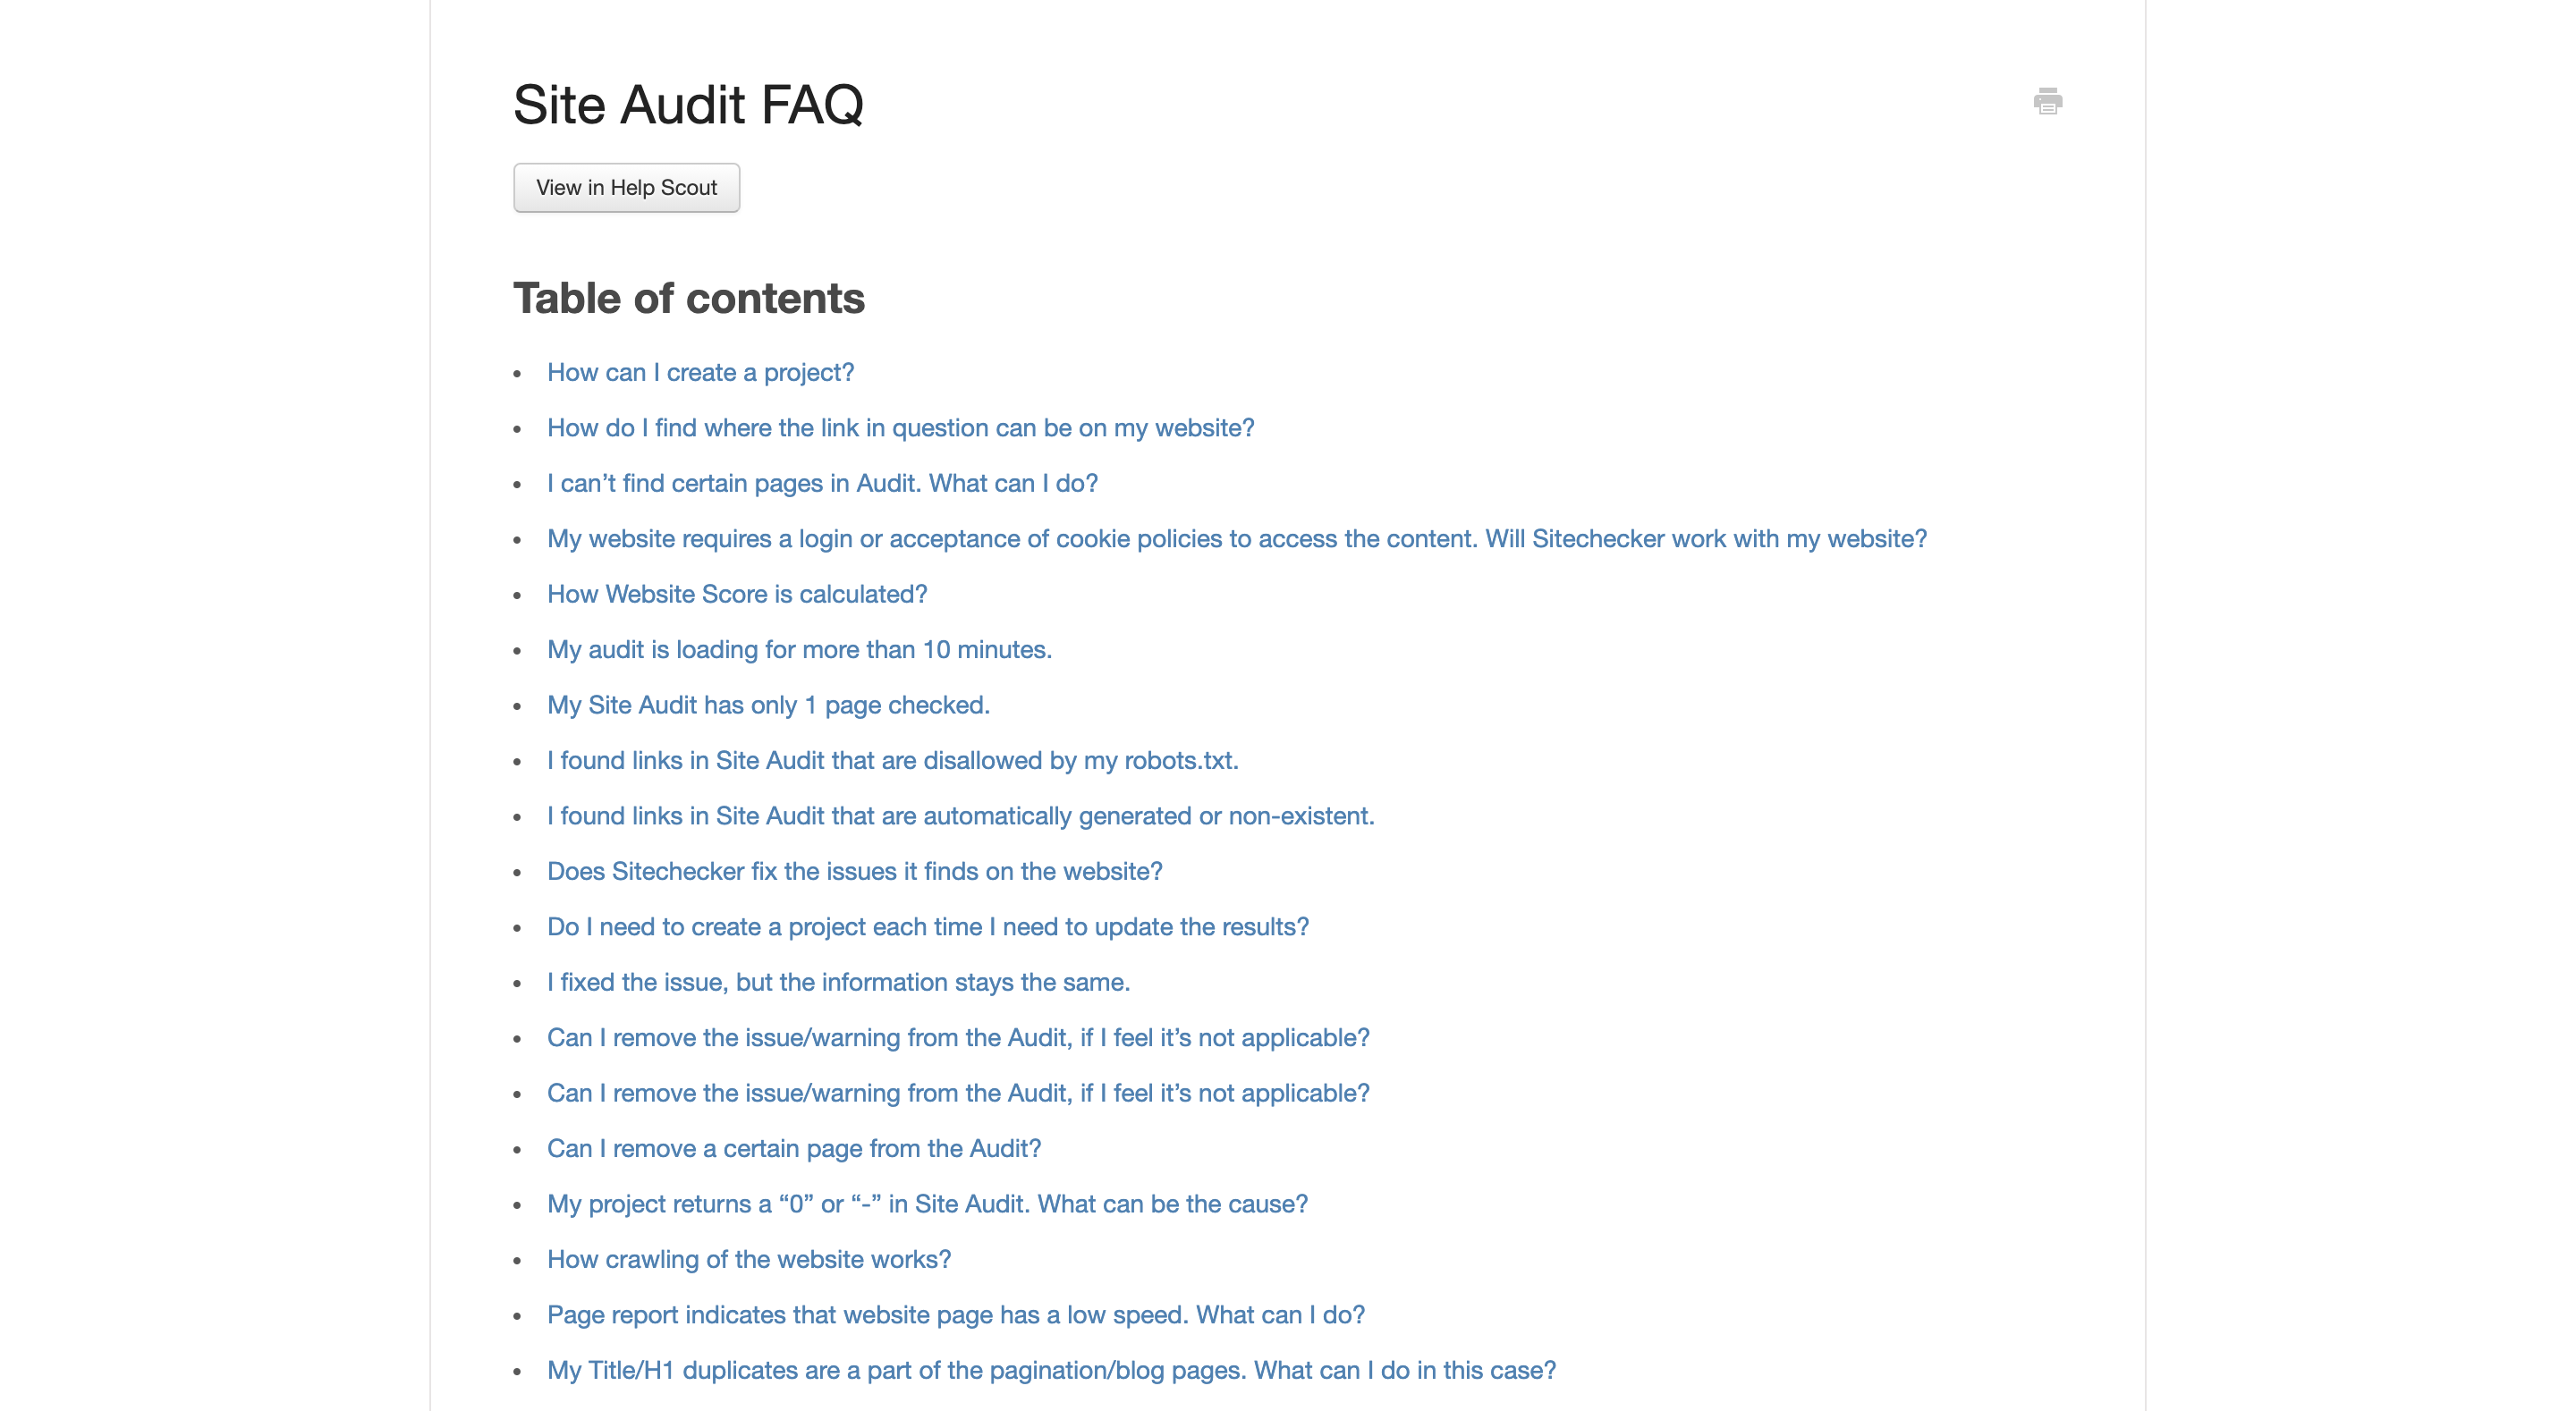 site audit frequently asked questions